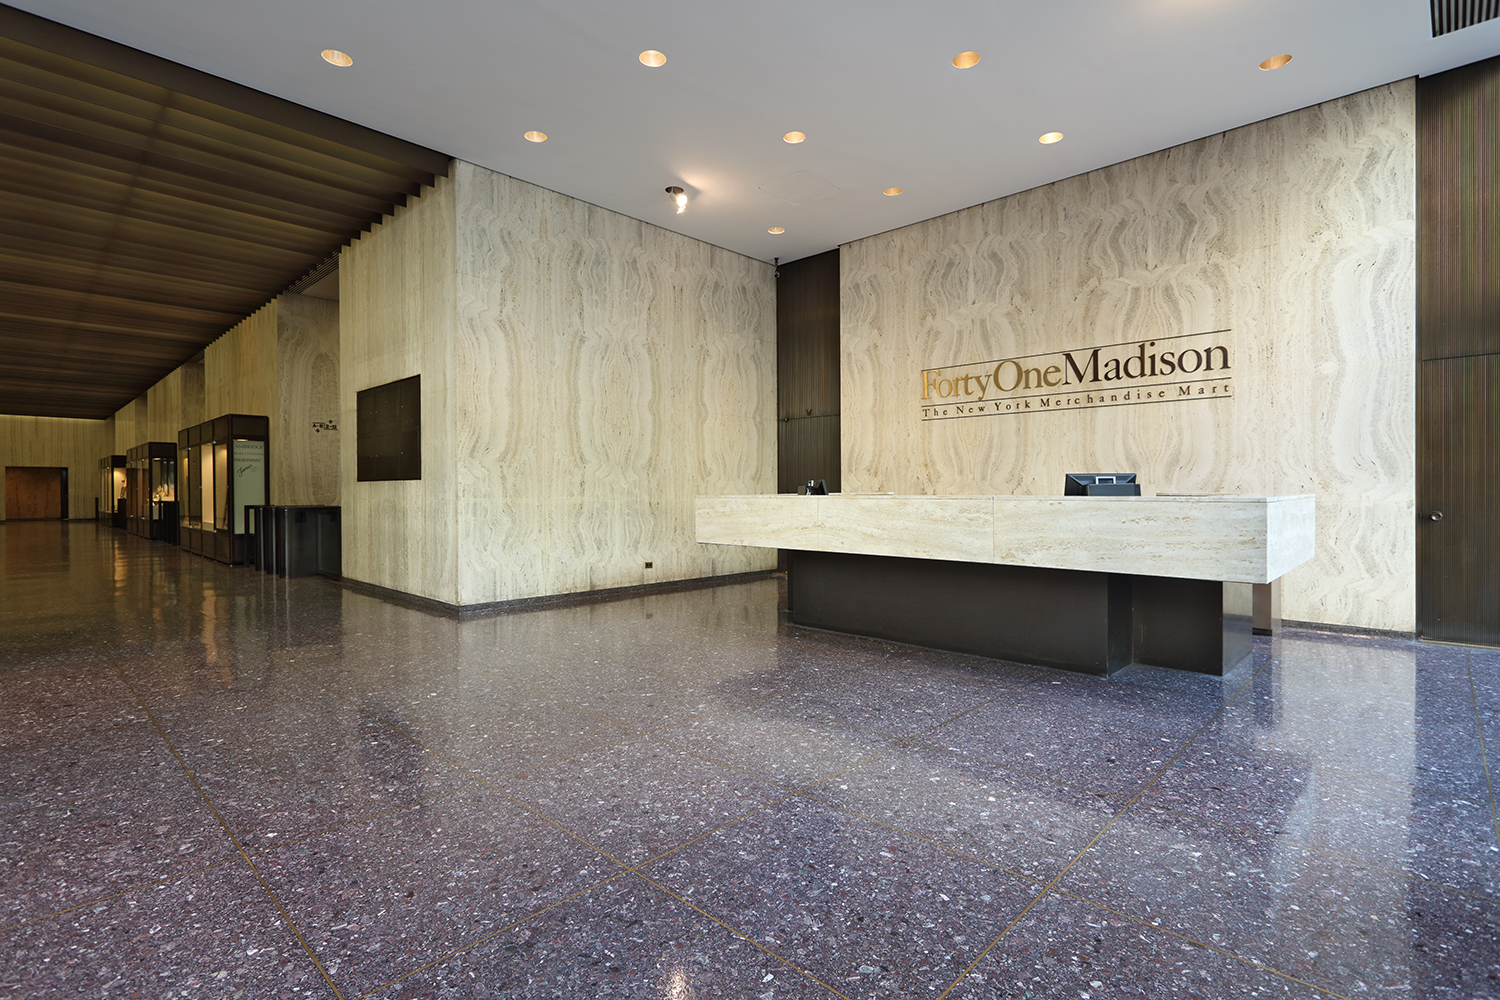 41 Madison Avenue, existing lobby. Via Rudin.